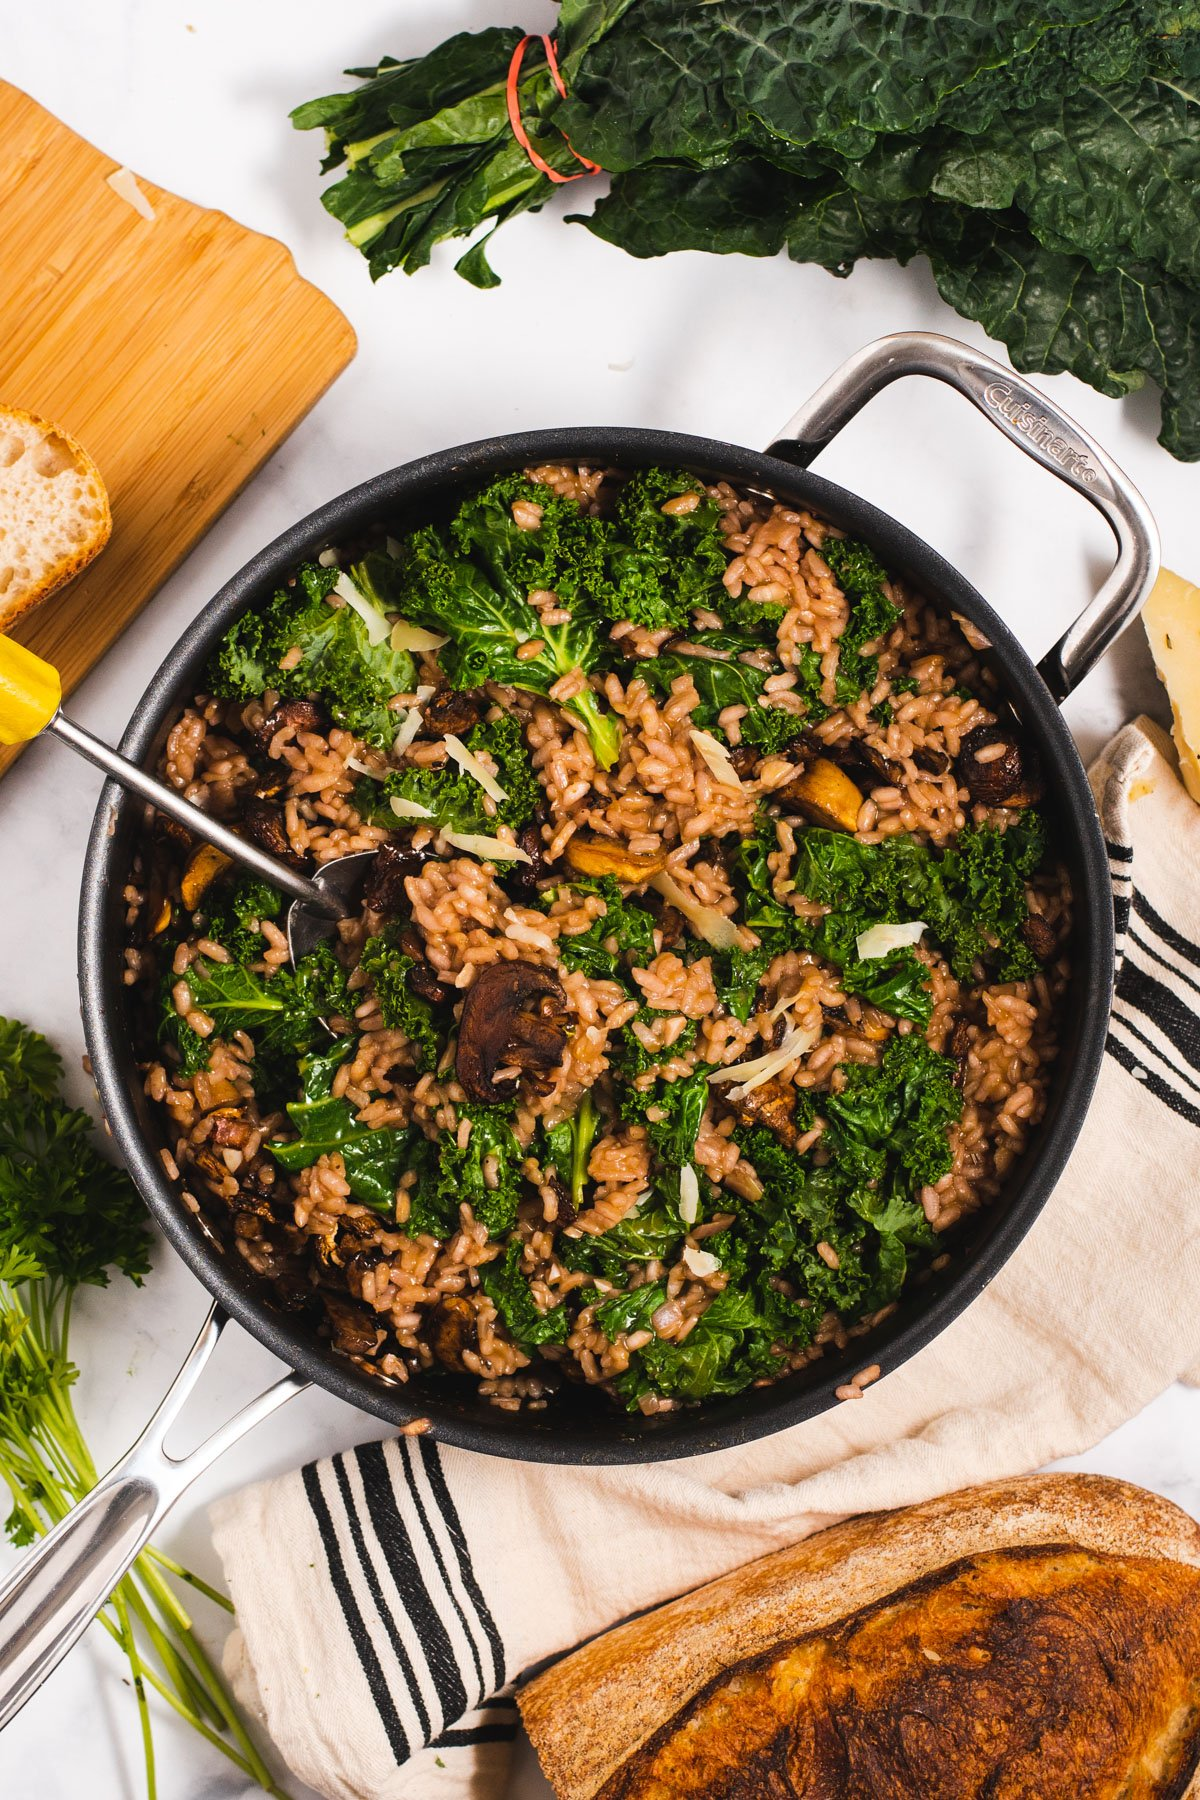 Large pan filled with risotto next to a loaf of bread, kale and a cutting board